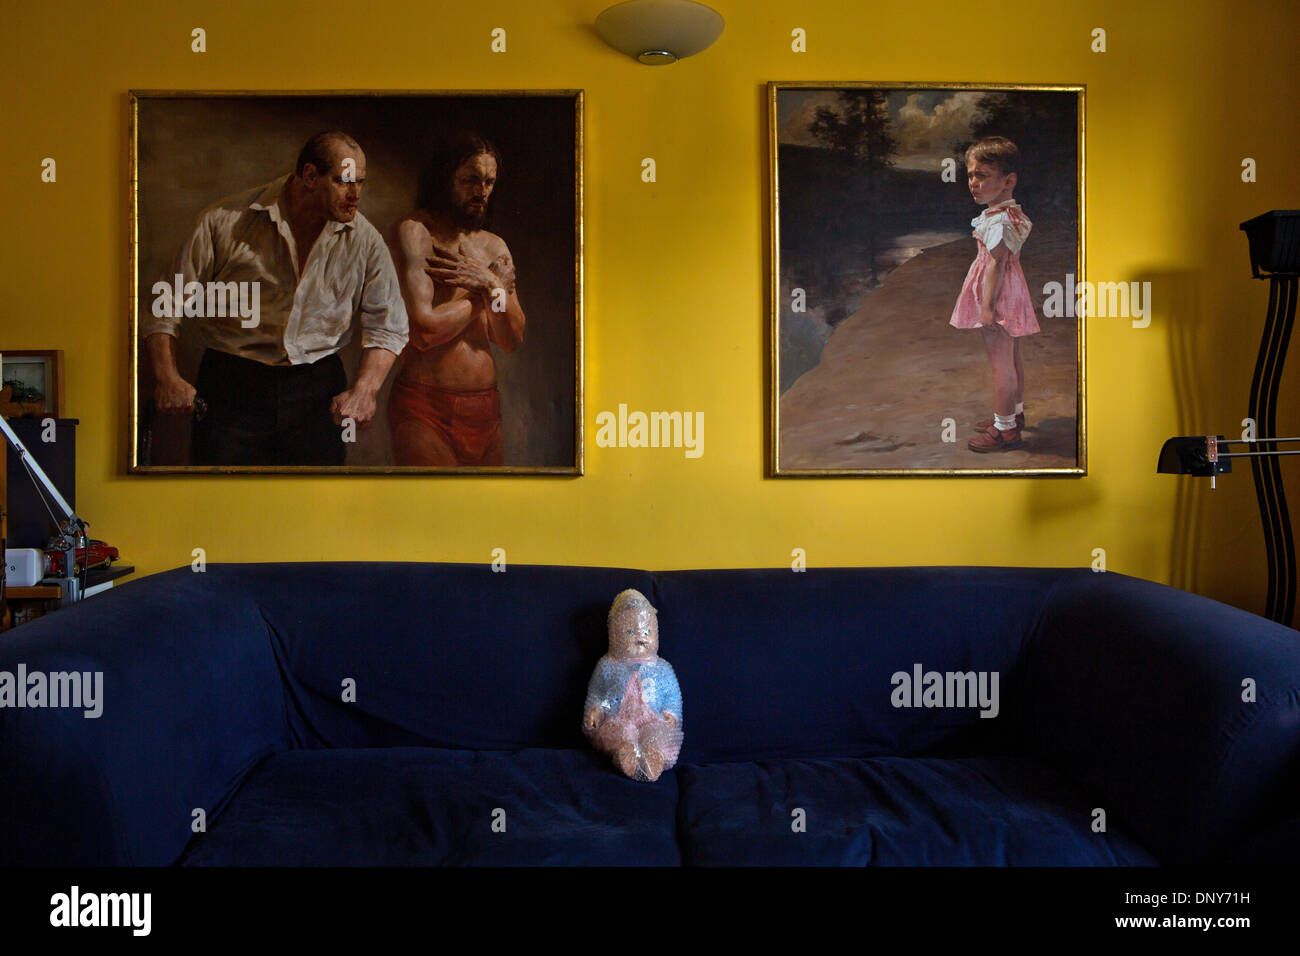 Paintings by the artist Janusz Szpyt on the wall of a London living room. A wrapped doll is sitting on the sofa. - Stock Image